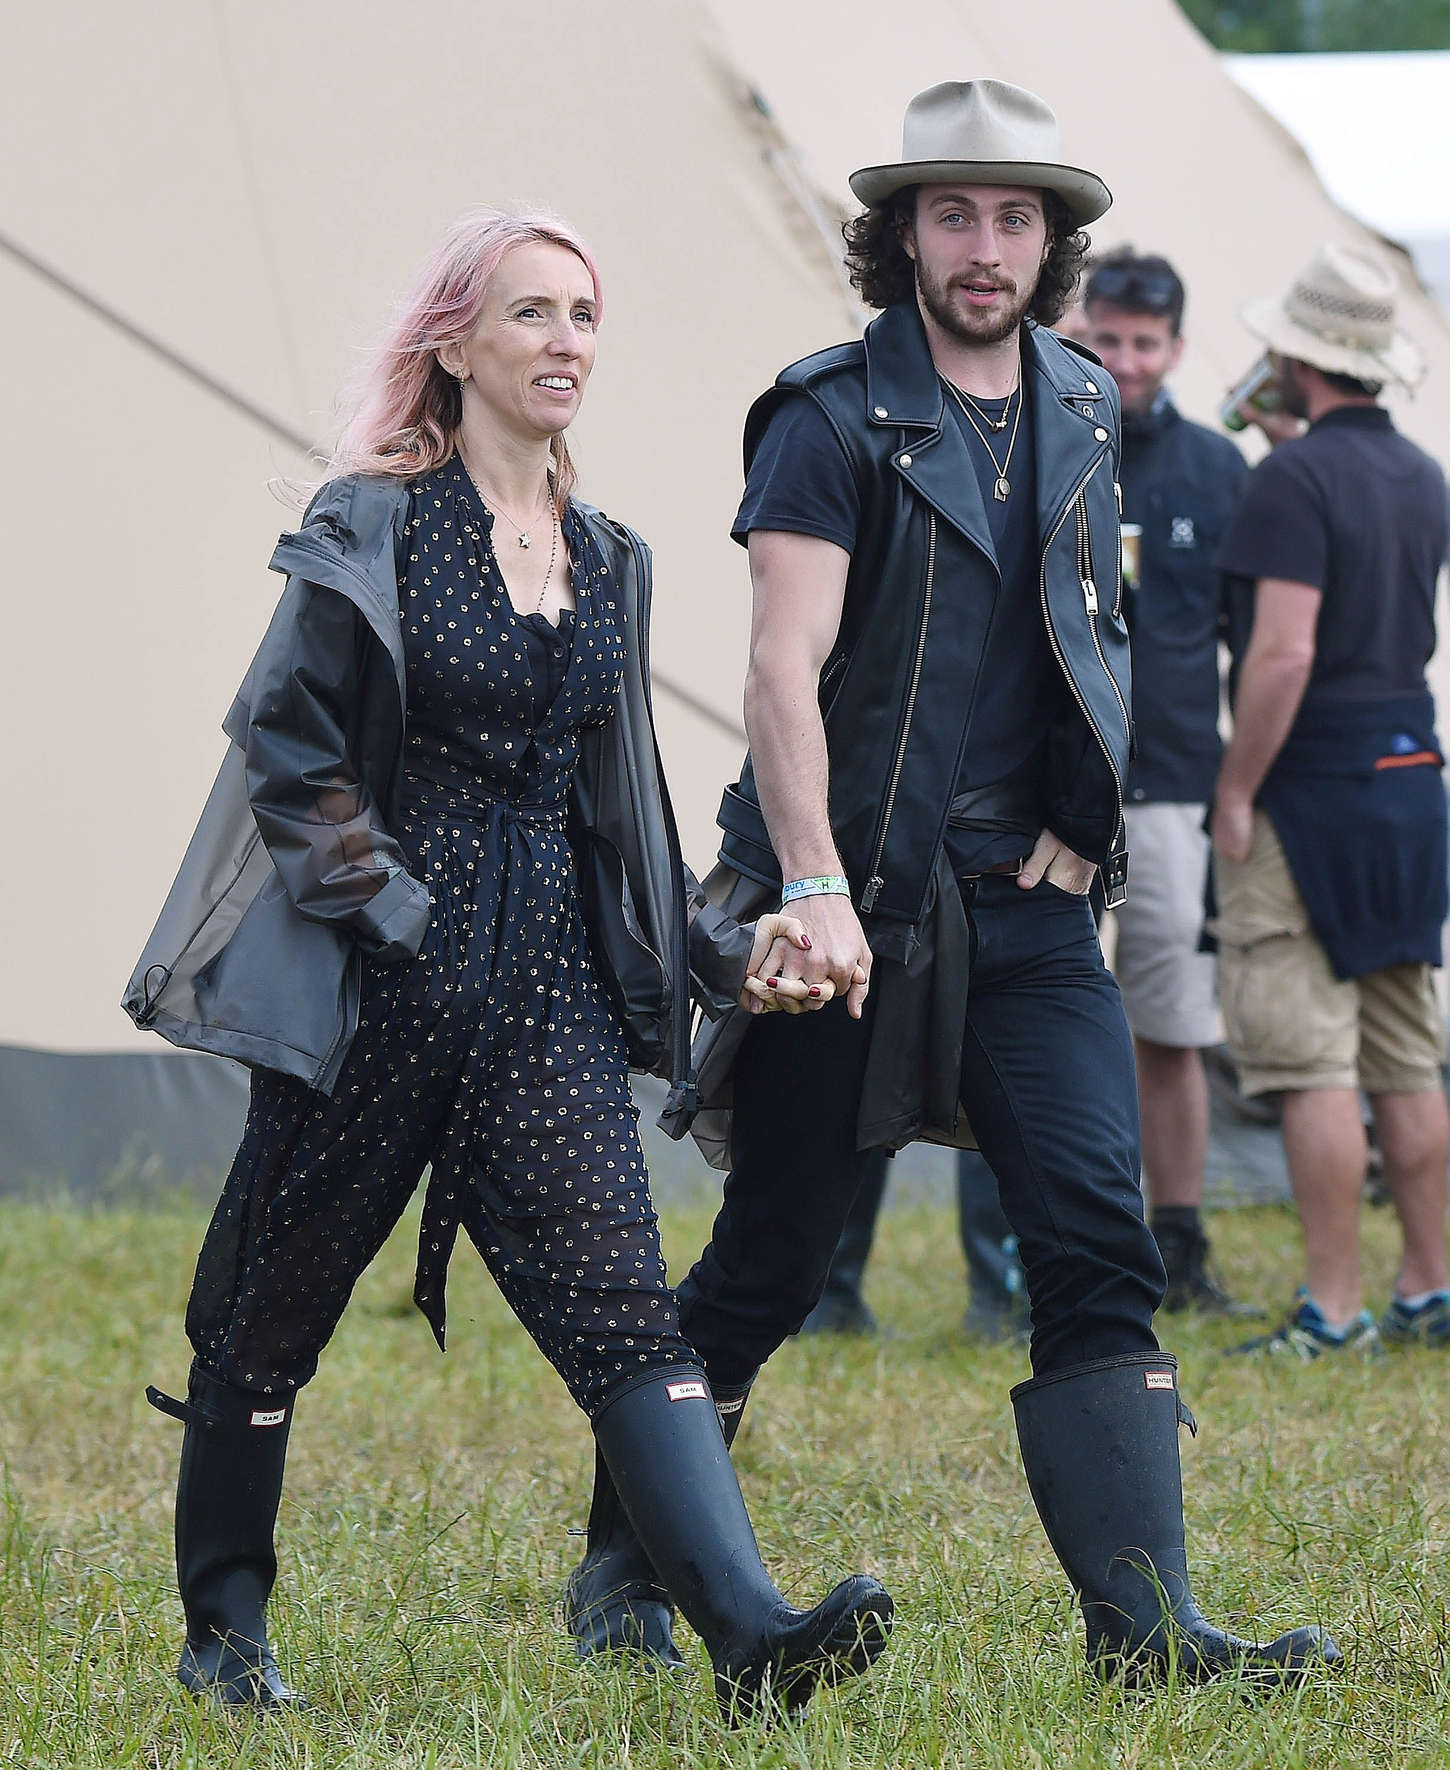 Sam Taylor-Johnson - Day 1 of the Glastonbury Festival in Glastonbury